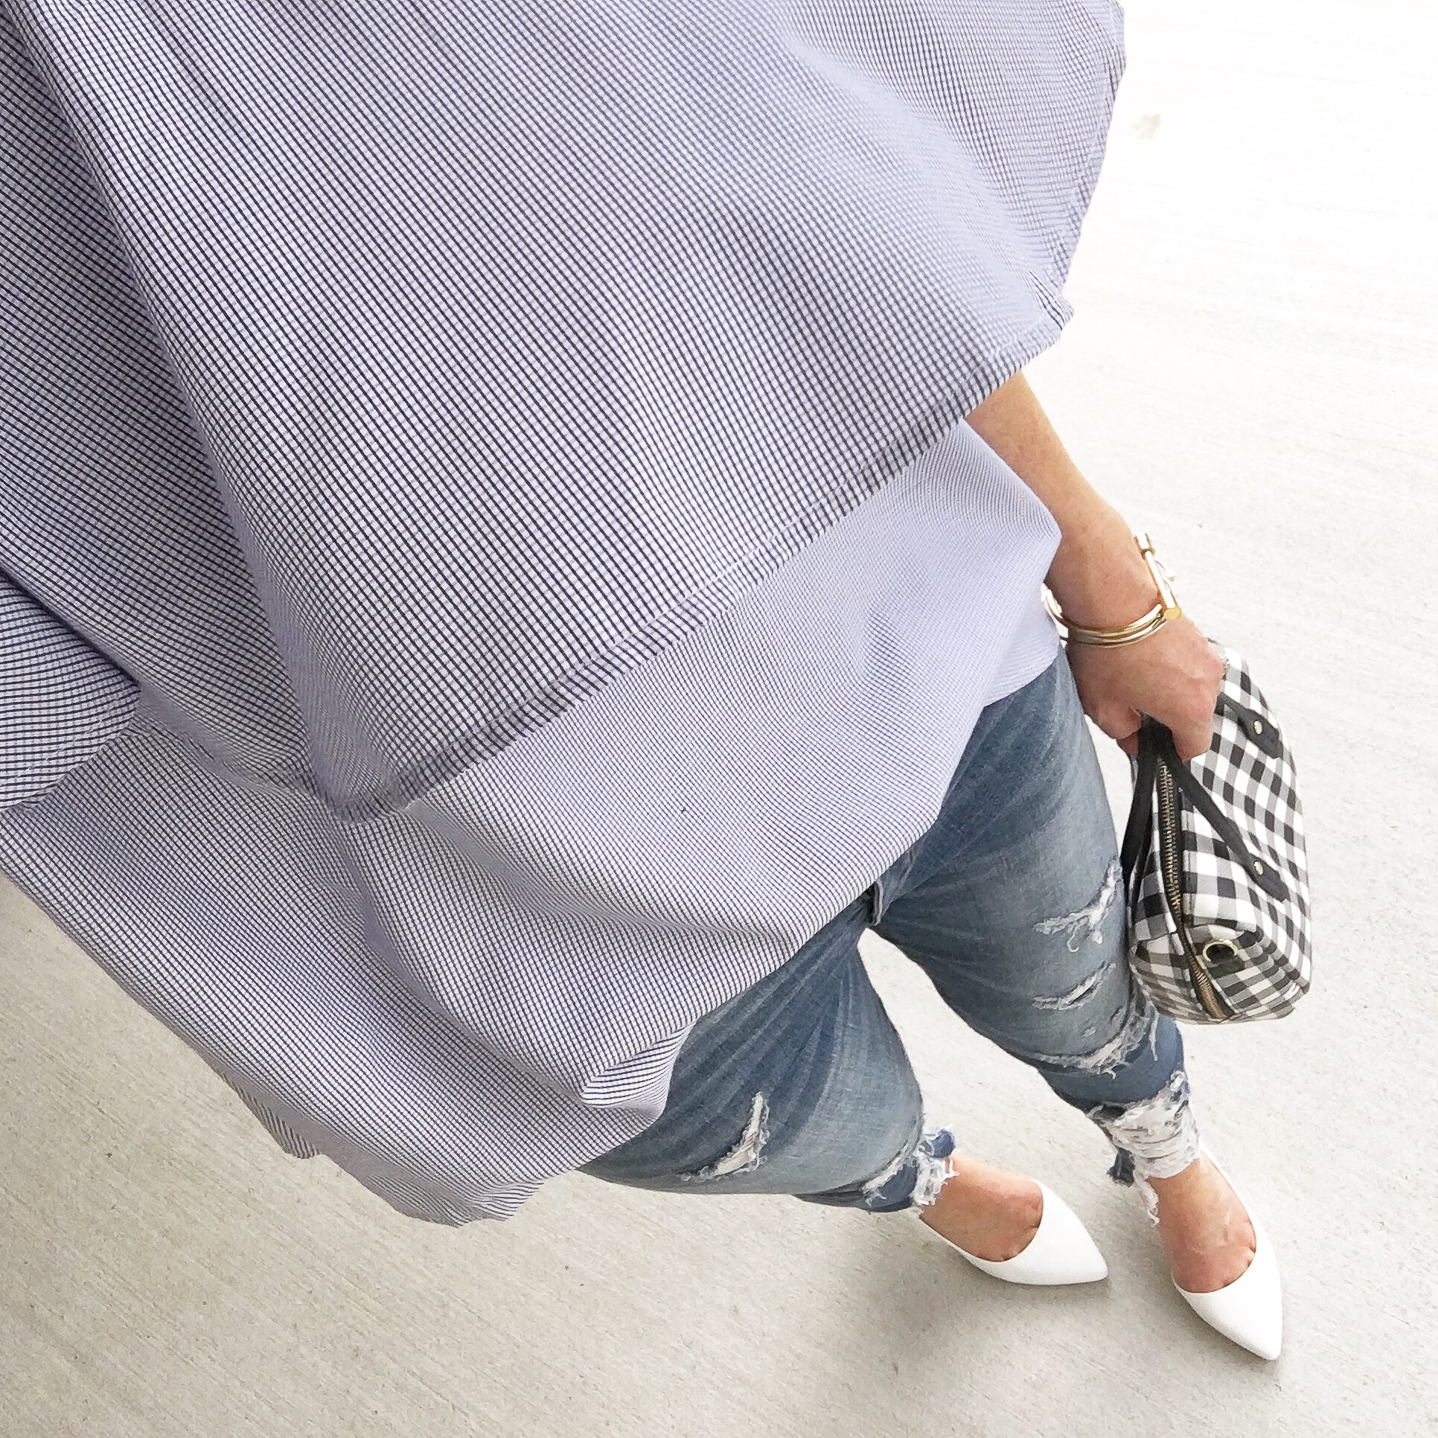 my favorite outfits for summer, Instagram, life lately, off the shoulder ruffle top, distressed jeans, white pumps, gingham purse